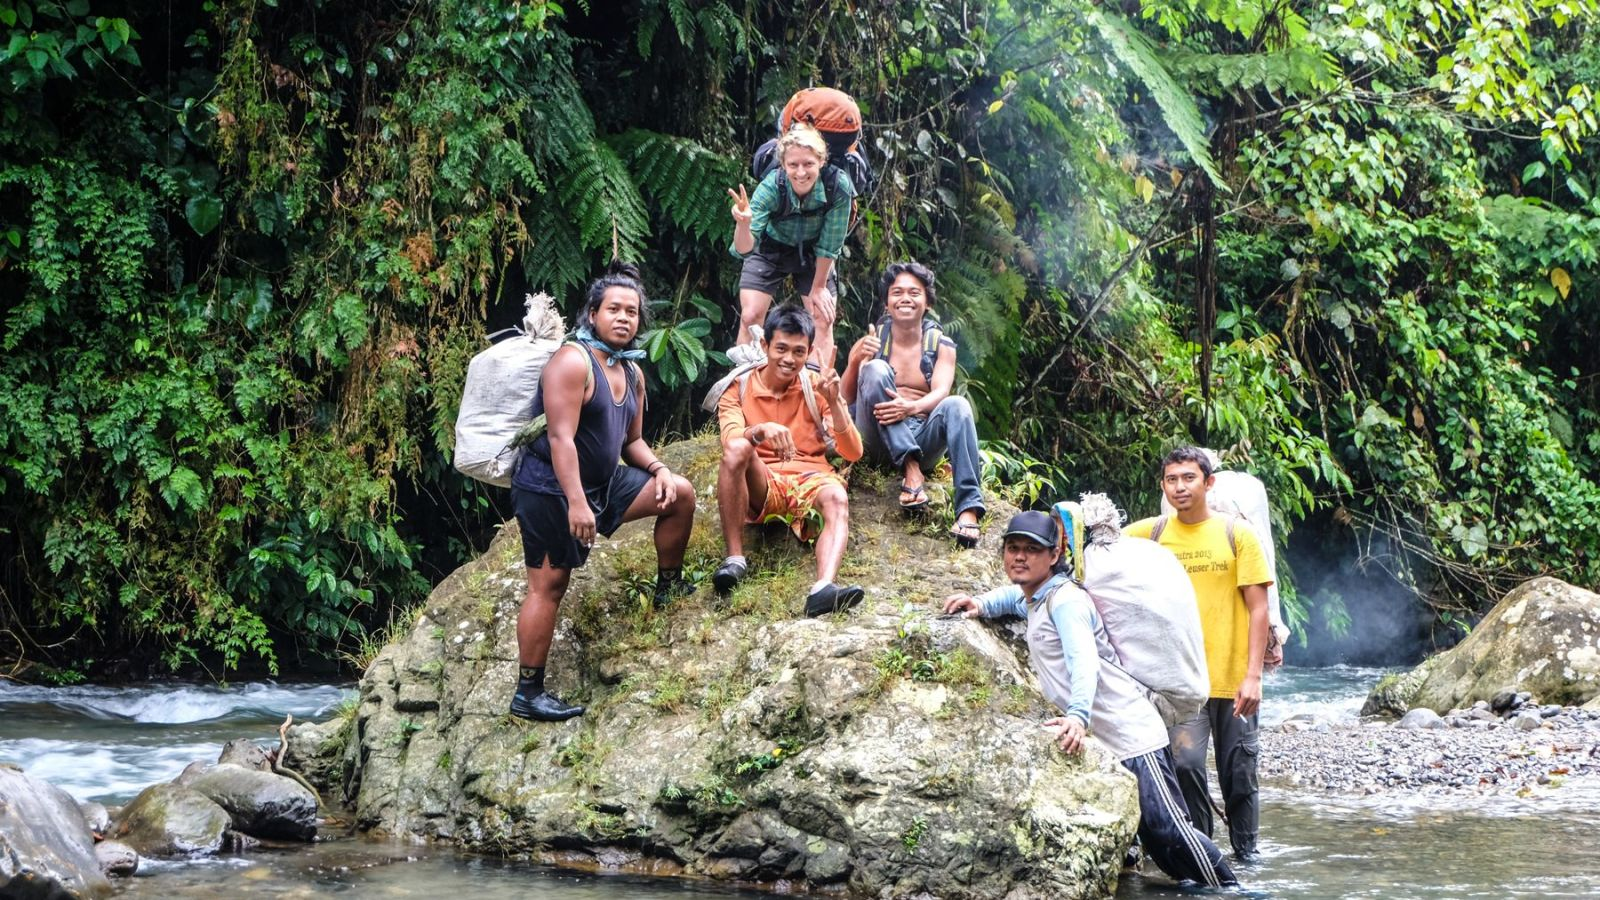 a photo of hikers in gunung leuser national park.